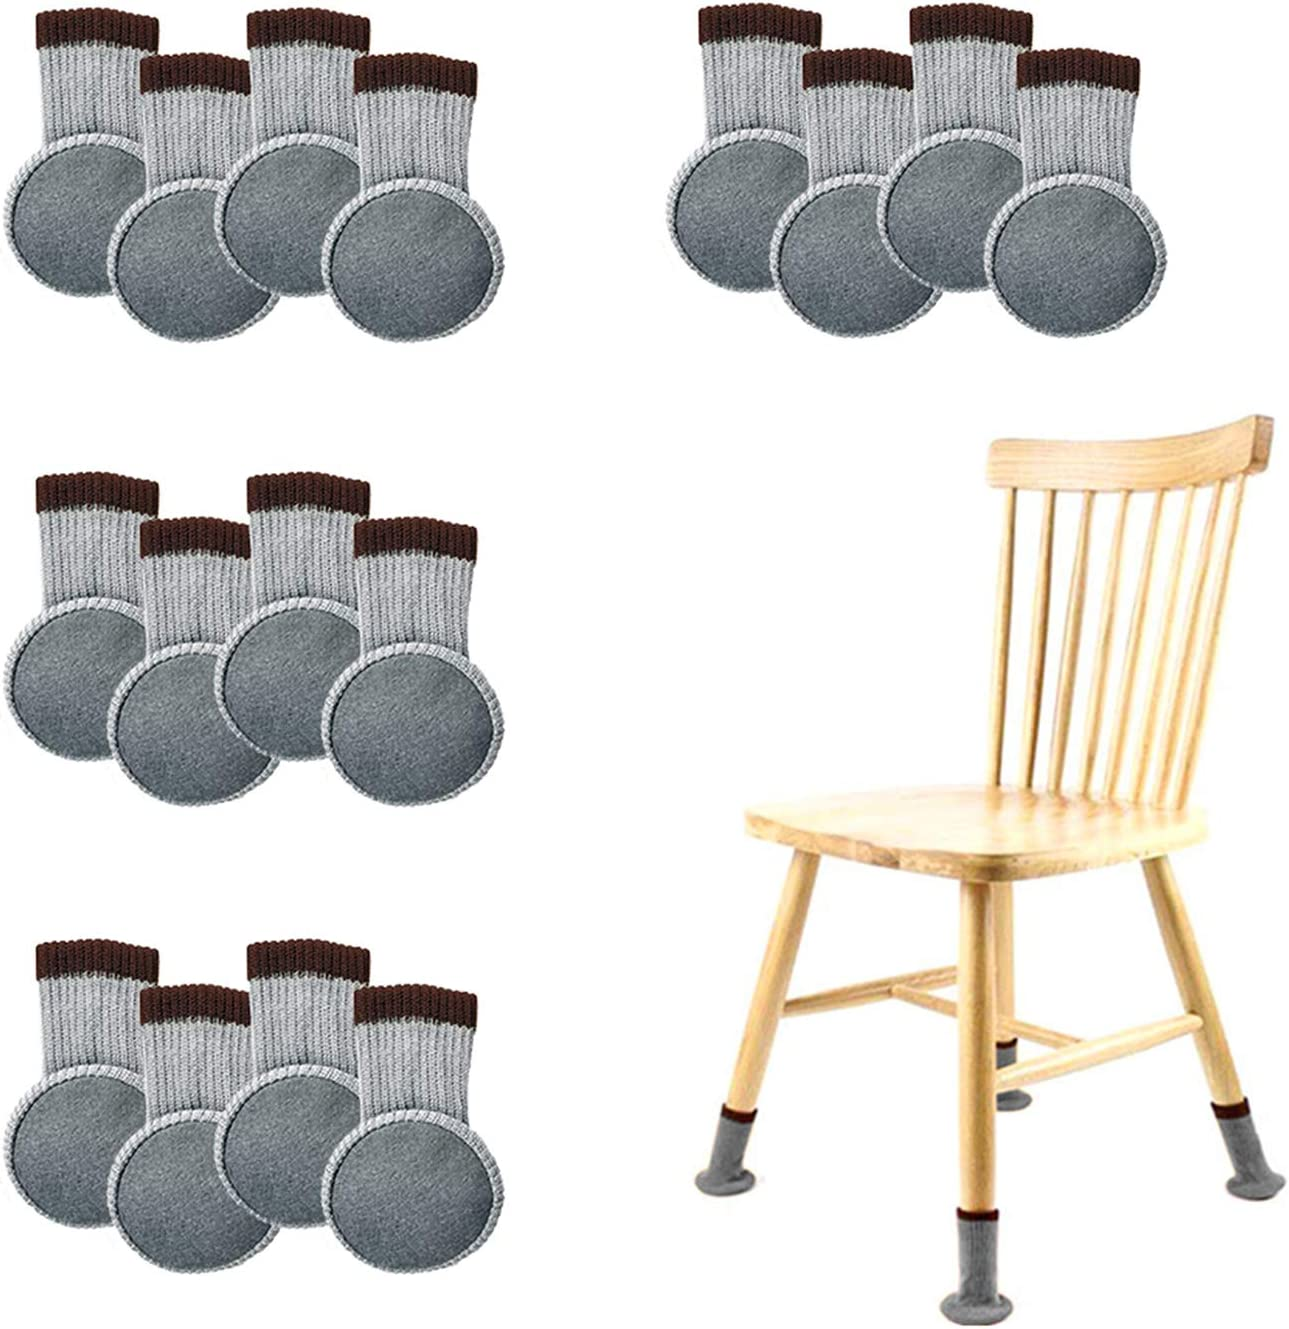 Chair Leg Socks with Felt Pads, AUHOKY High Elastic Knitted Wood Floor Protectors, Non-Slip Thick Furniture Booties Pads Covers Caps Set - Avoid Noise & Scratches(Gray) (16Pcs)